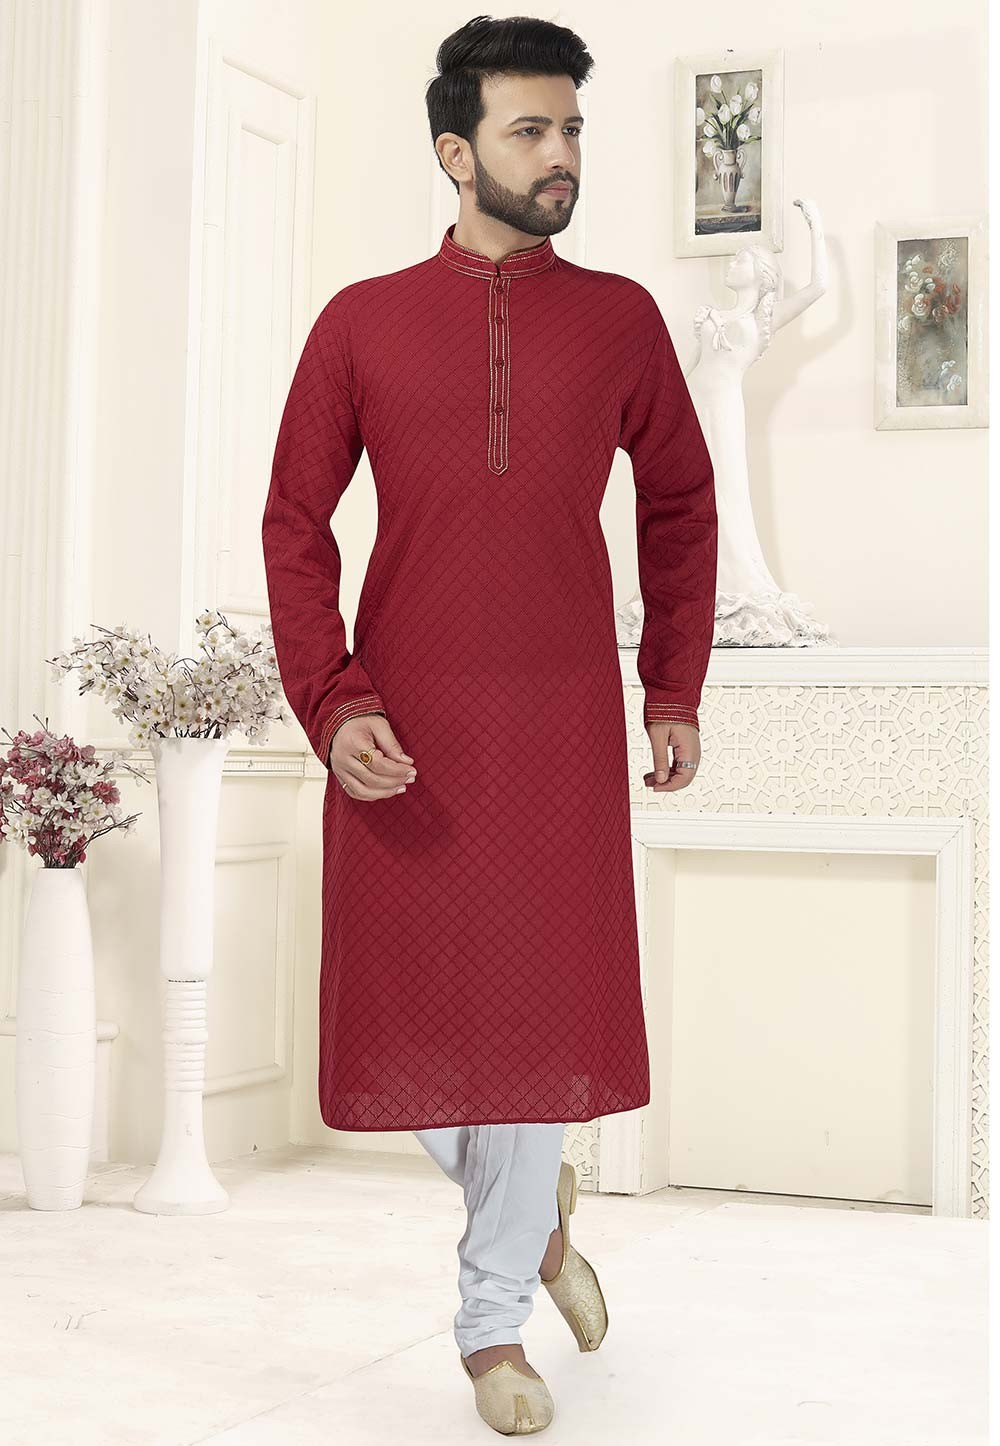 Red Colour Indian Wedding Kurta Pajama.